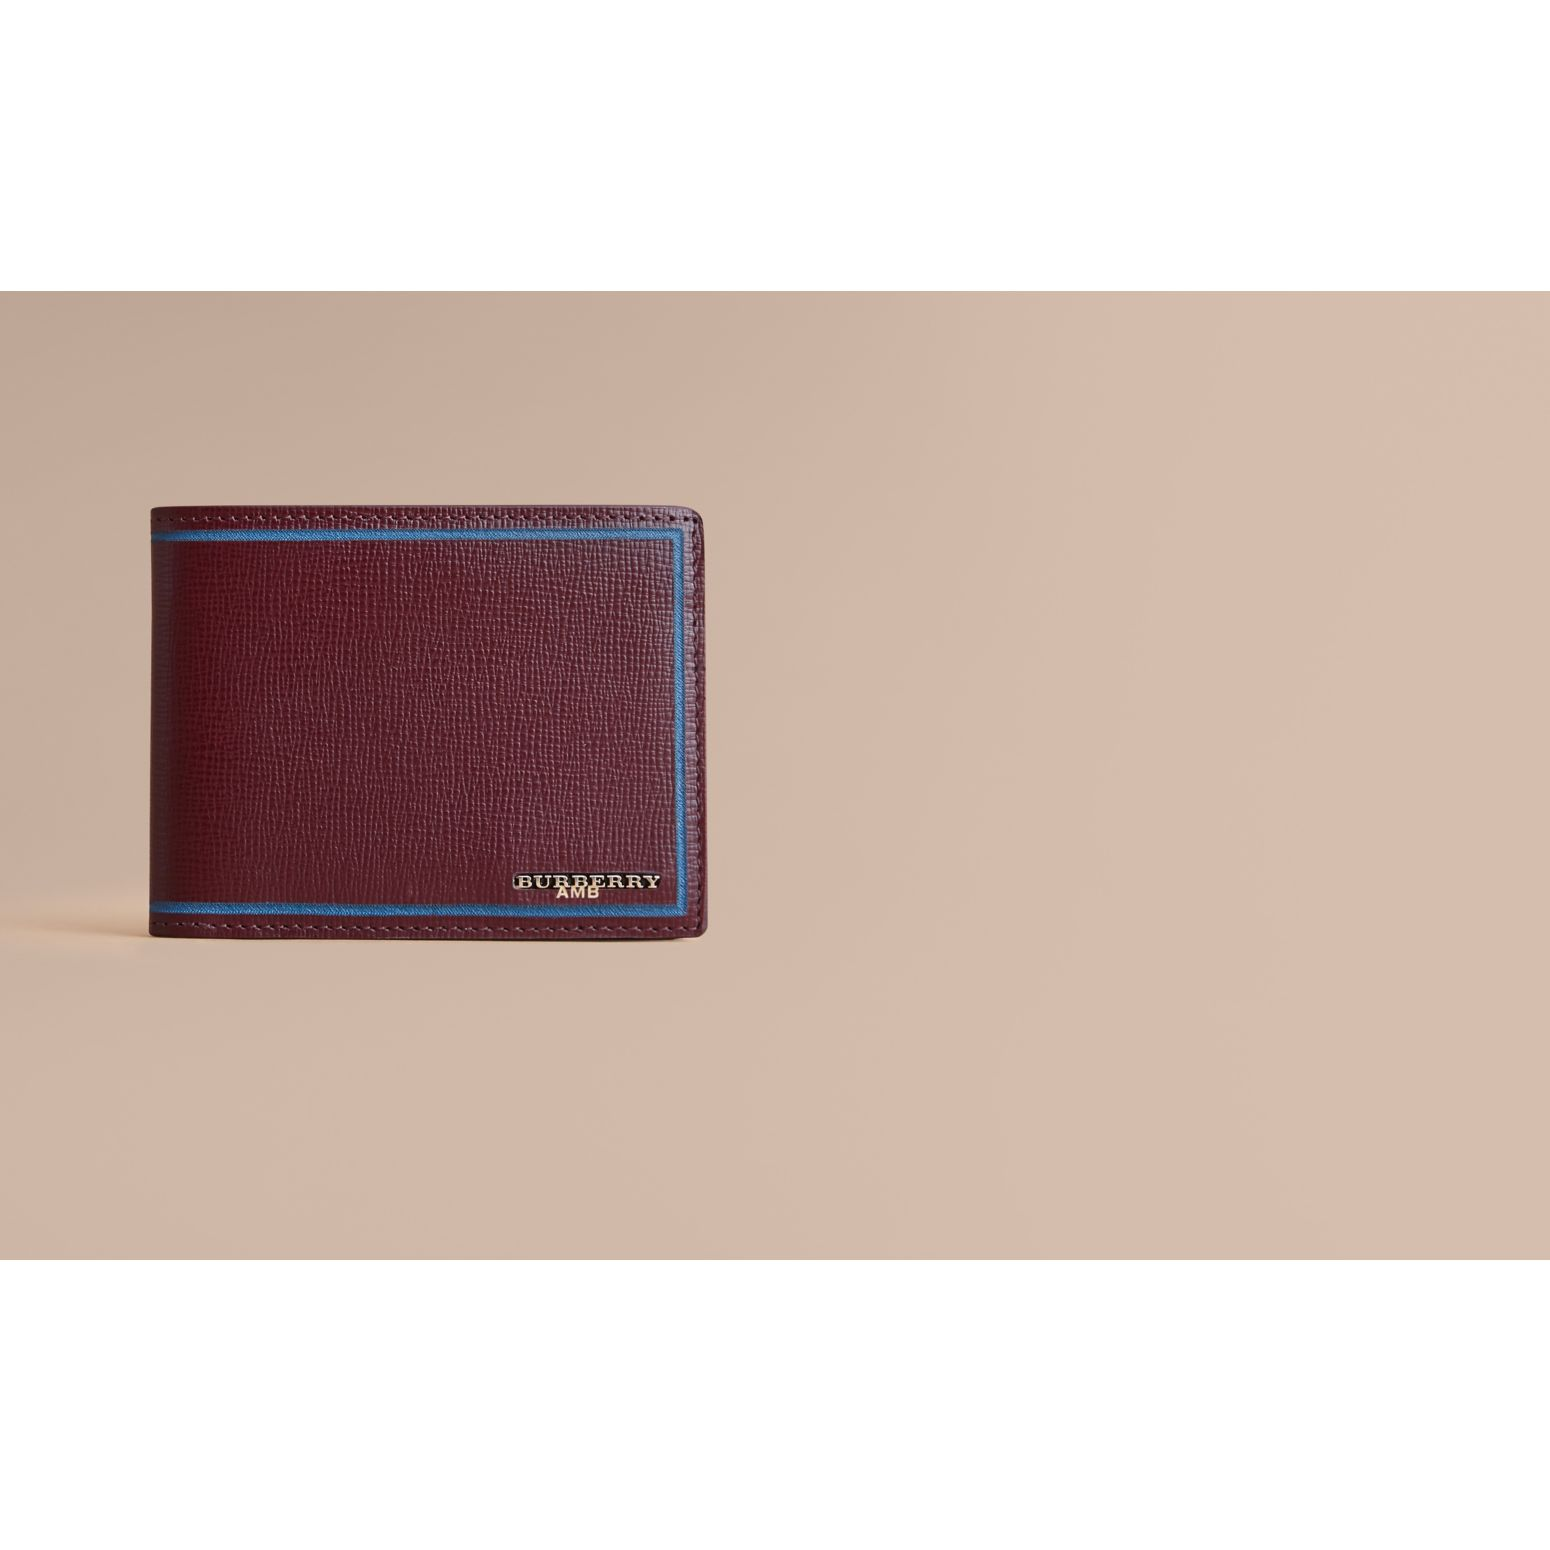 Border Detail London Leather Folding Wallet Burgundy Red - gallery image 2